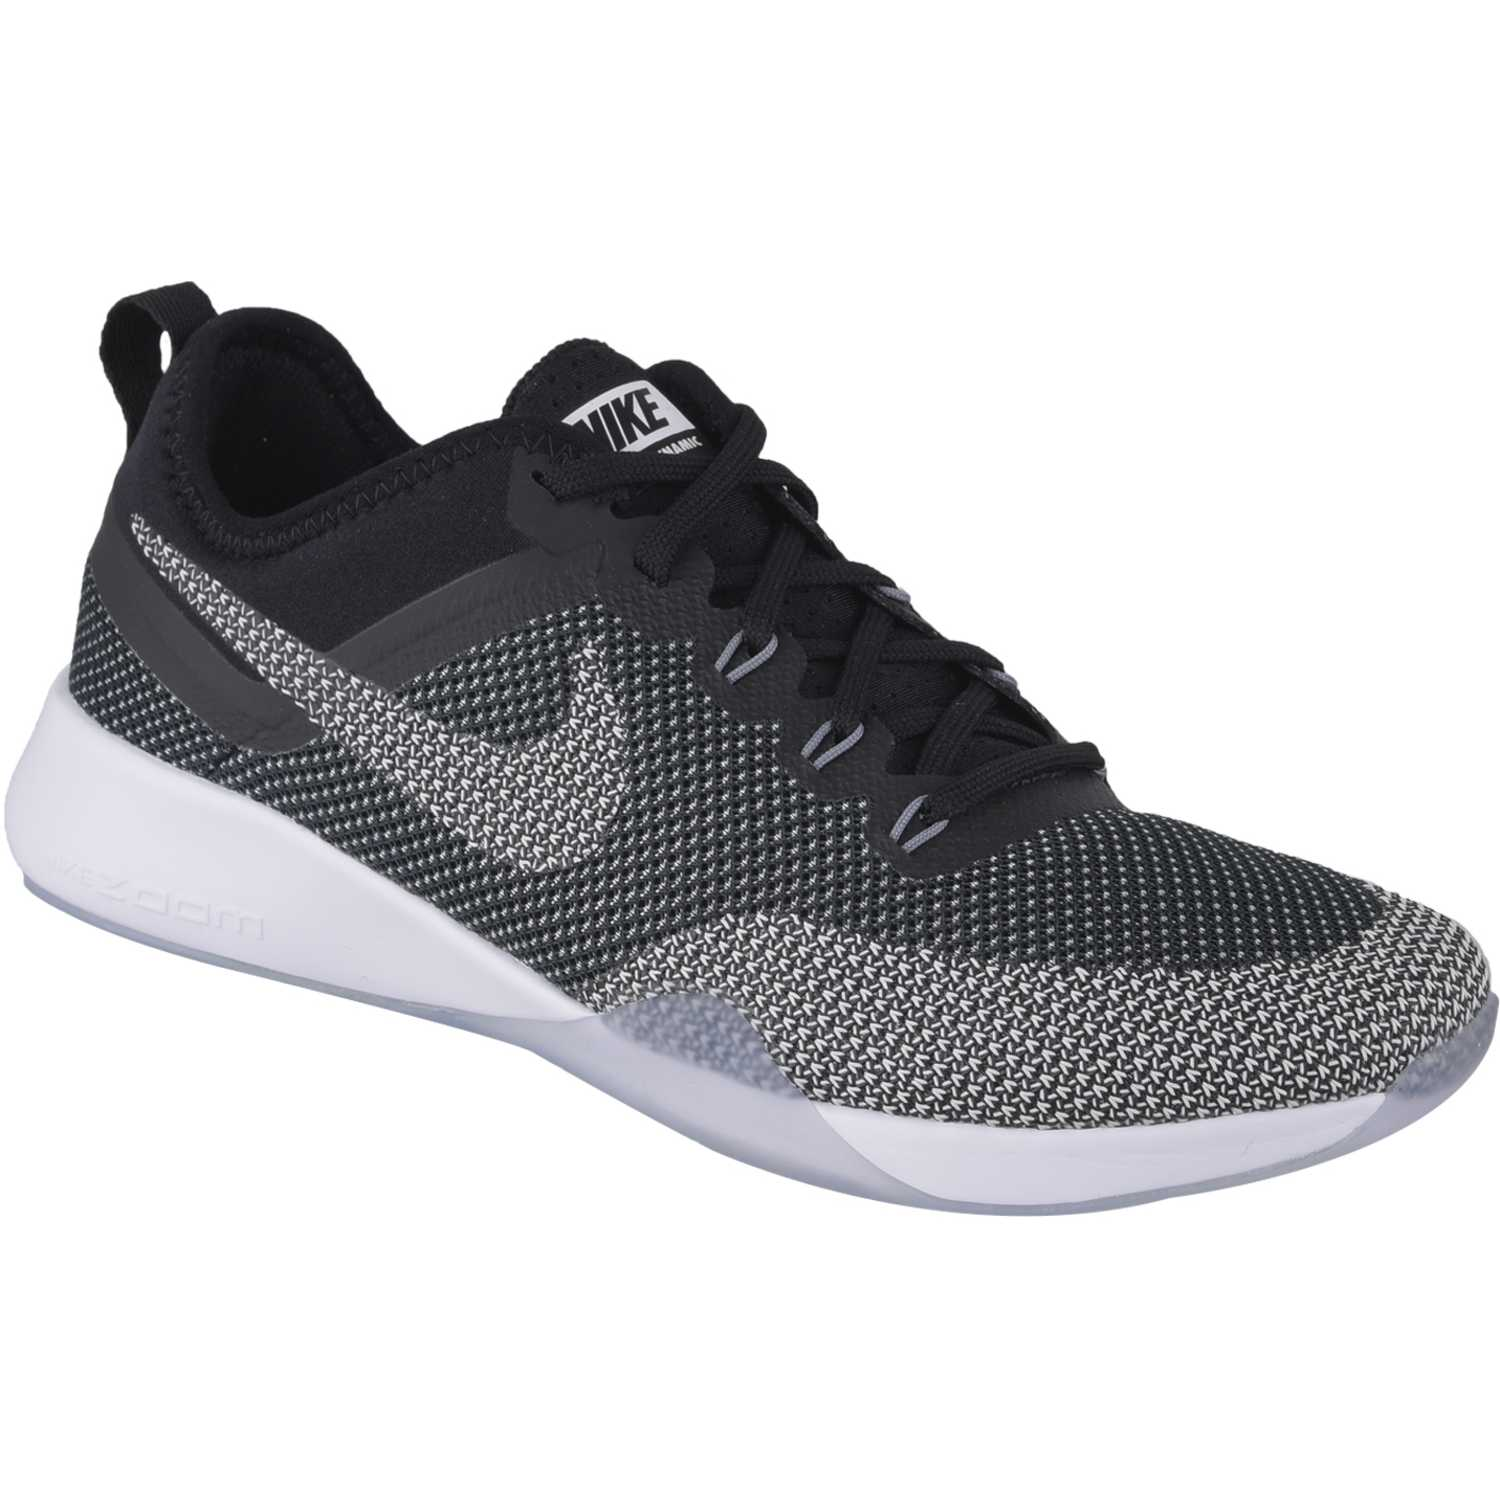 Casual de Mujer Nike Negro /gris wmns air zoom tr dynamic